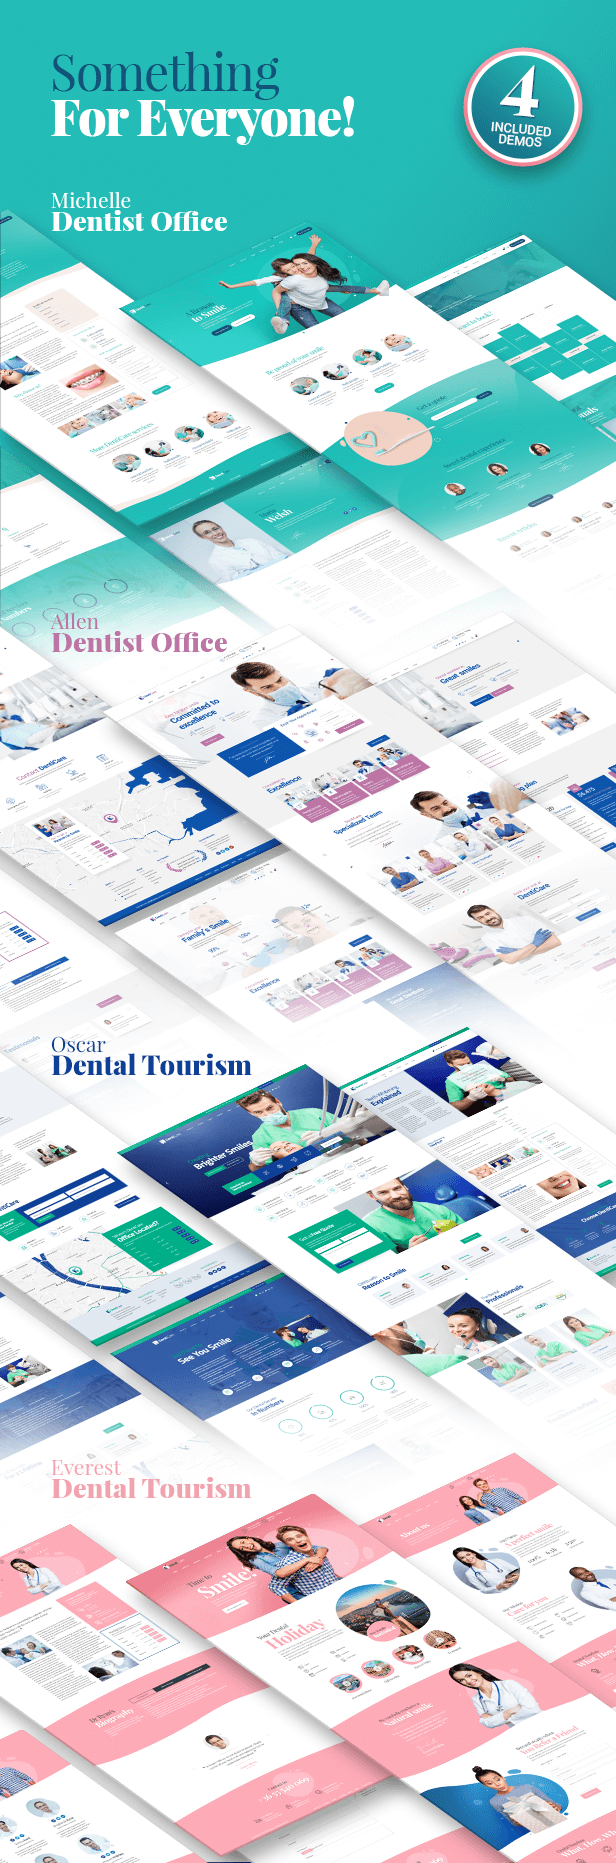 DentiCare - WordPress Theme for Dentist & Dental Clinic - 4